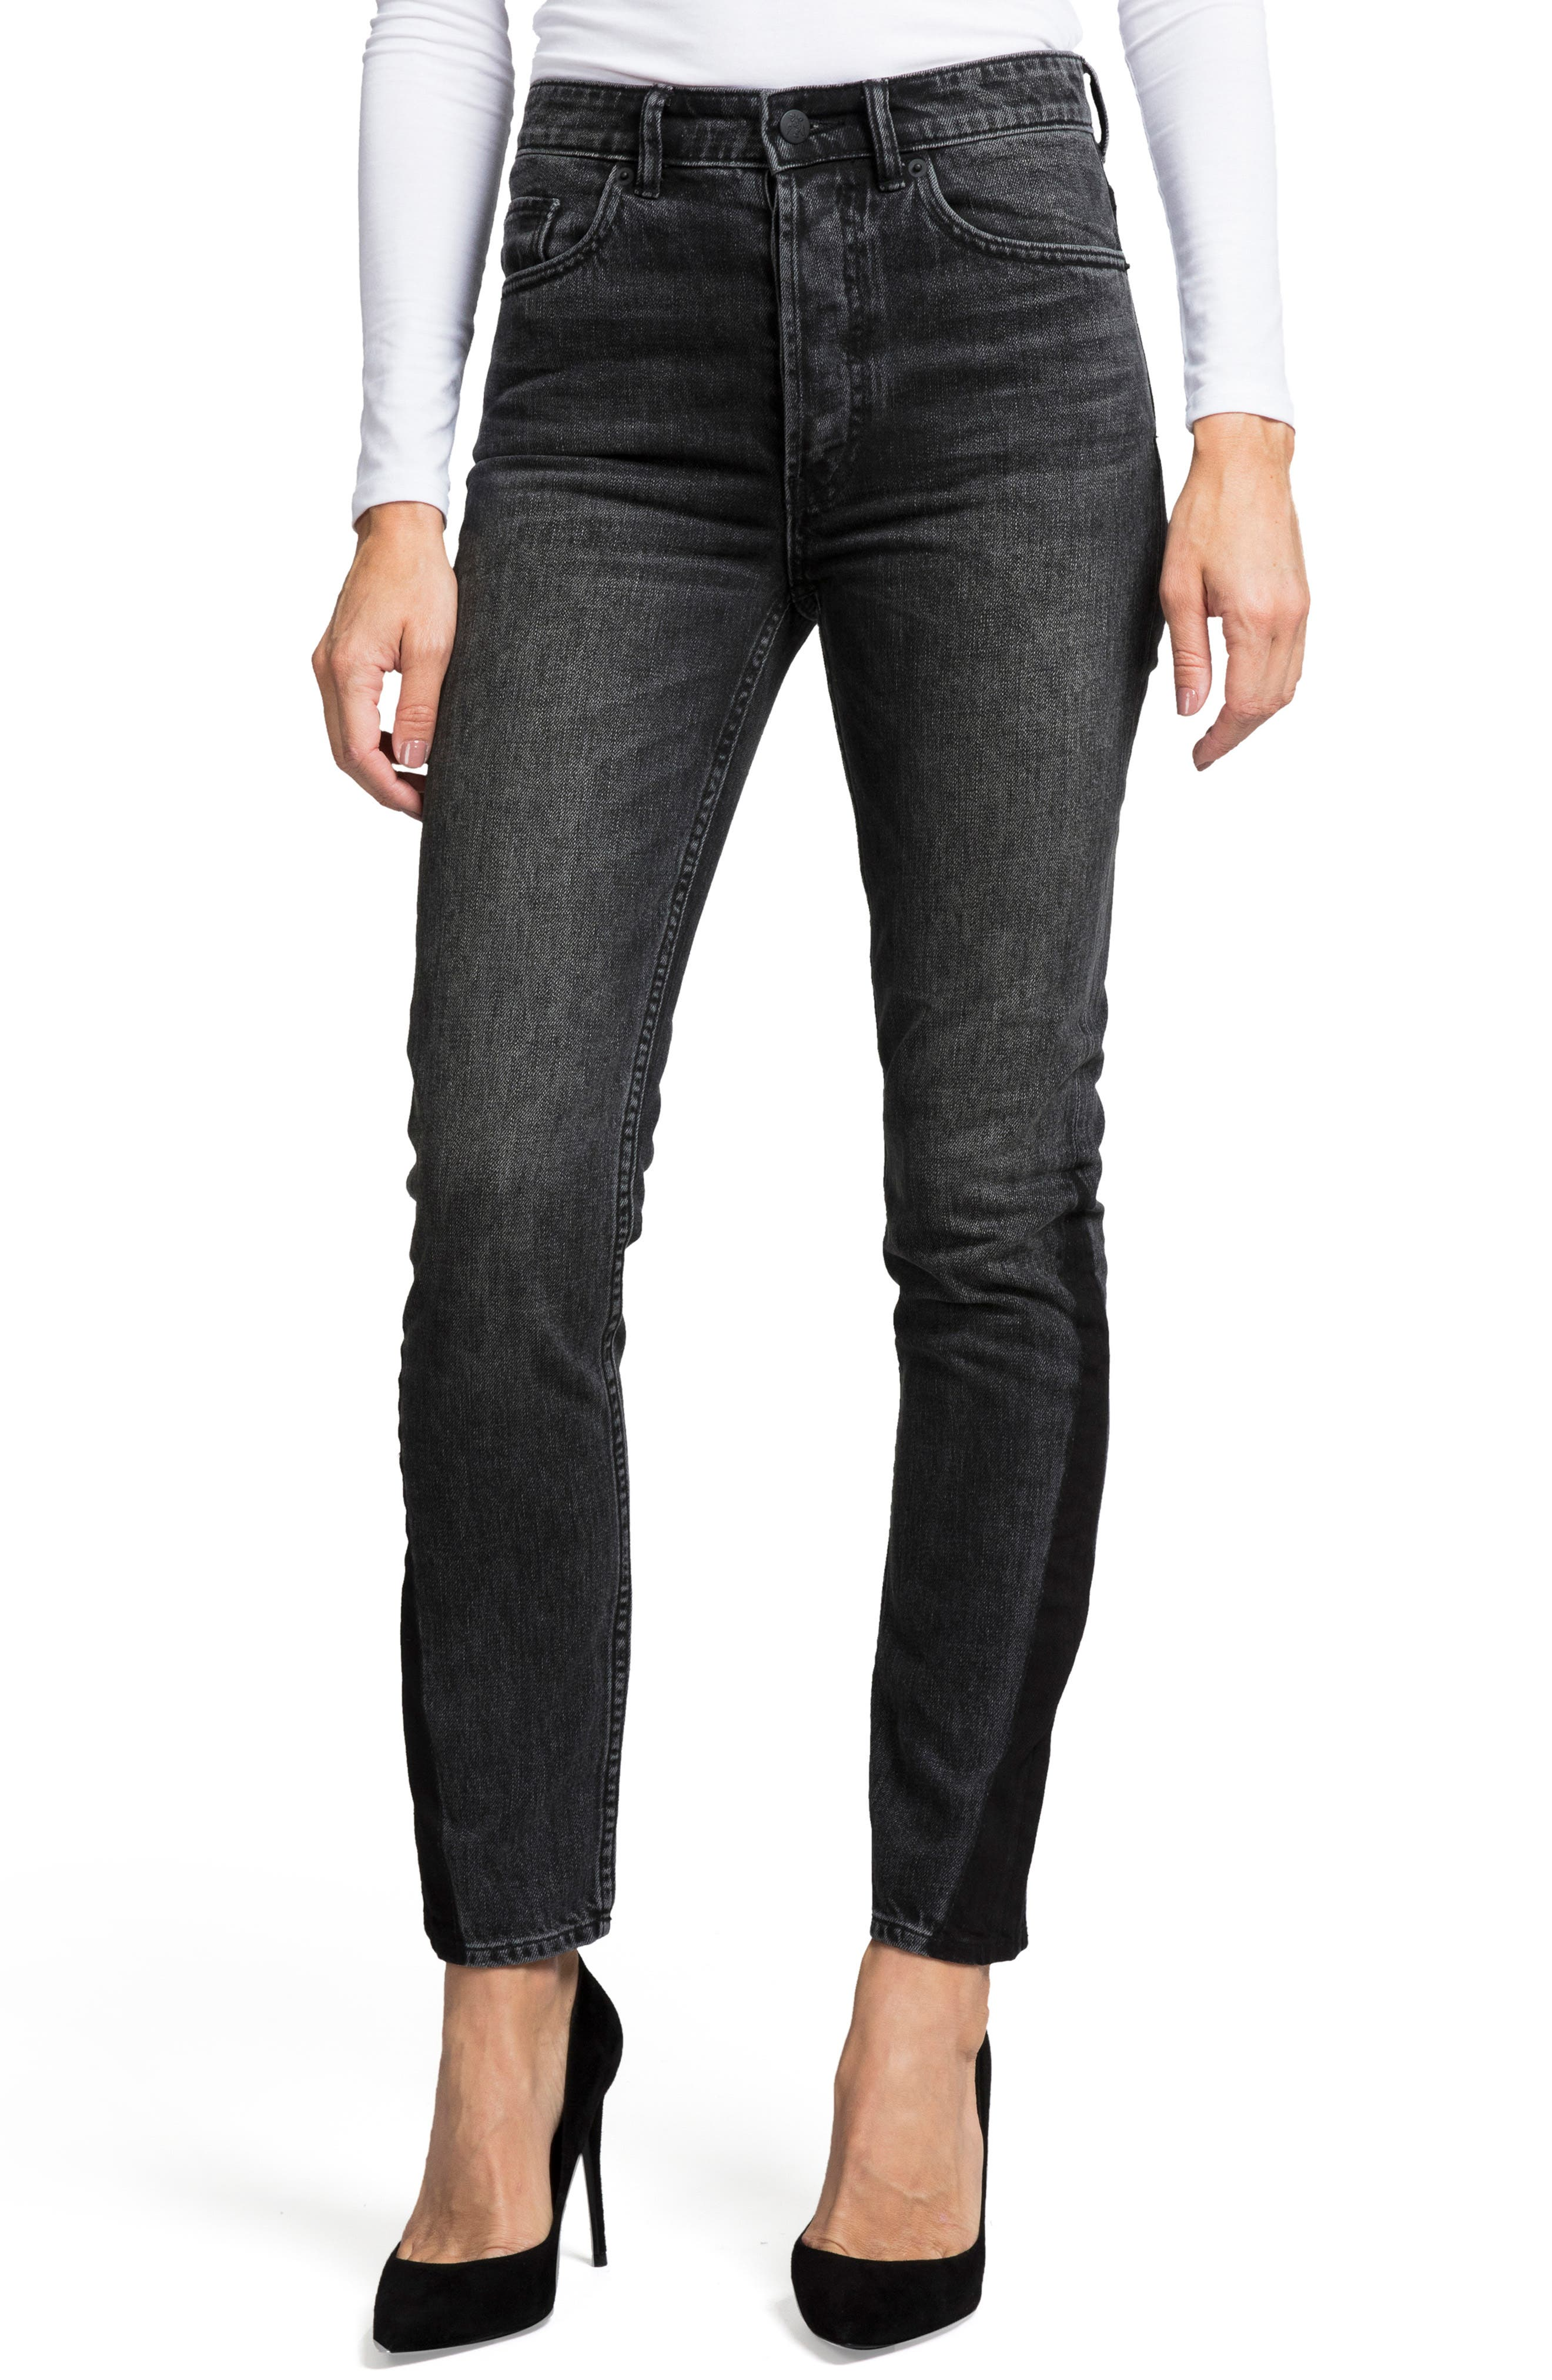 PRPS Amx Two-Tone High Waist Skinny Jeans in Black